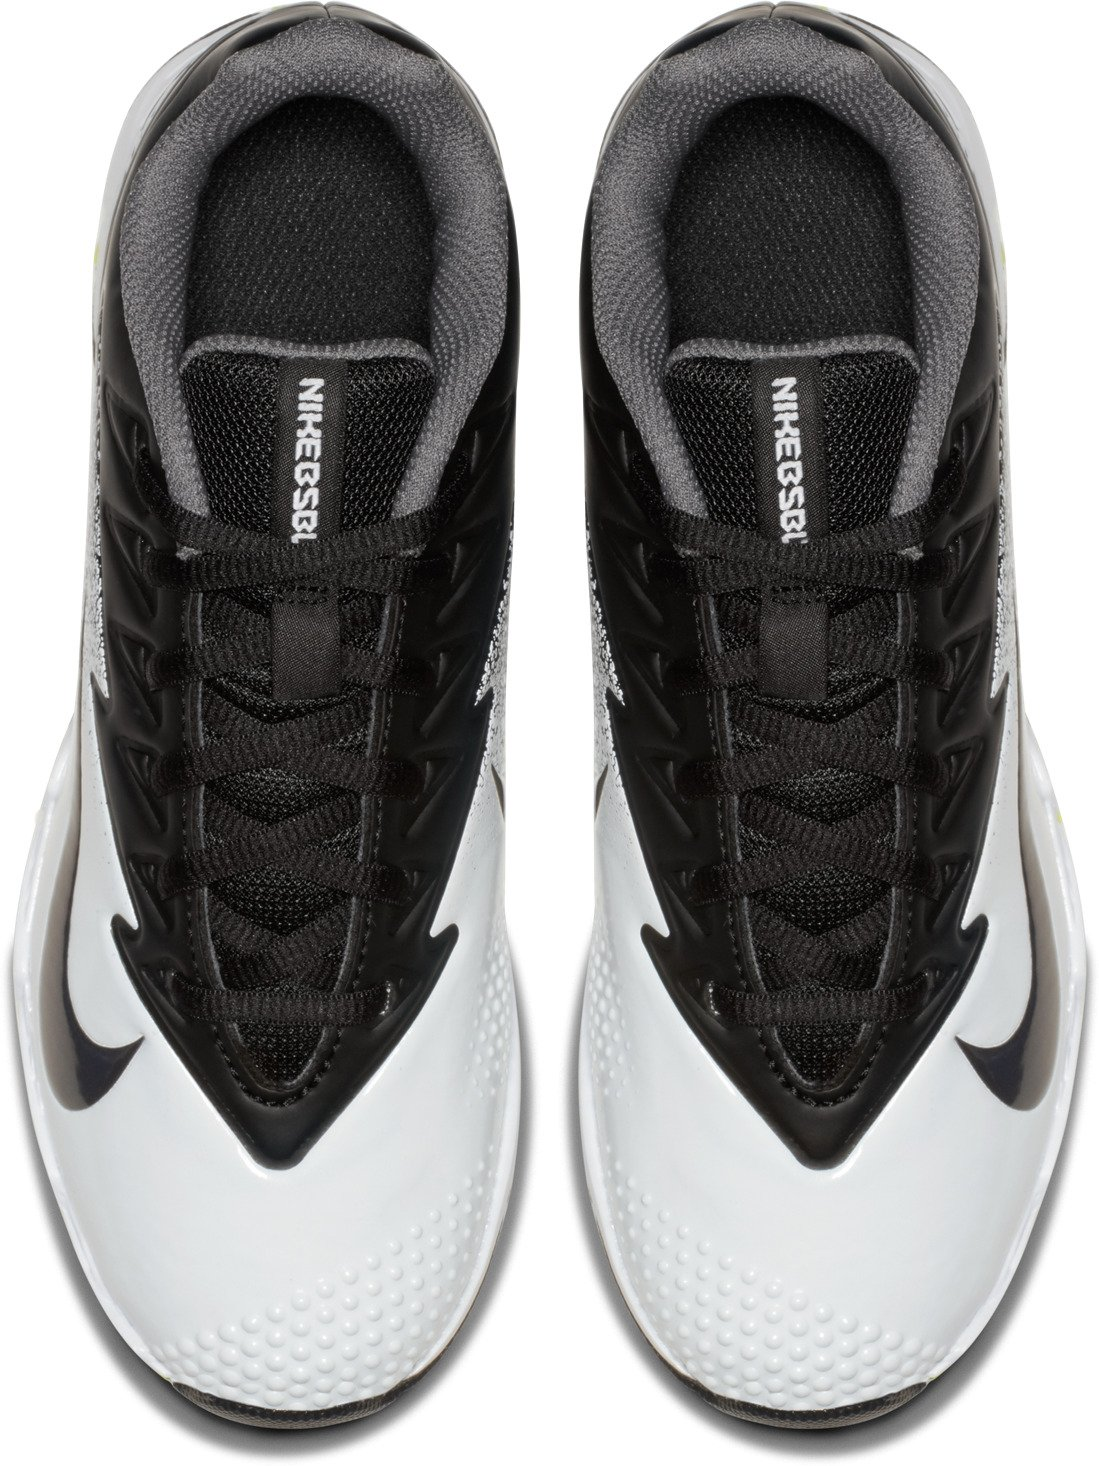 Nike Boys' Vapor Ultrafly Keystone GS Baseball Cleats - view number 6